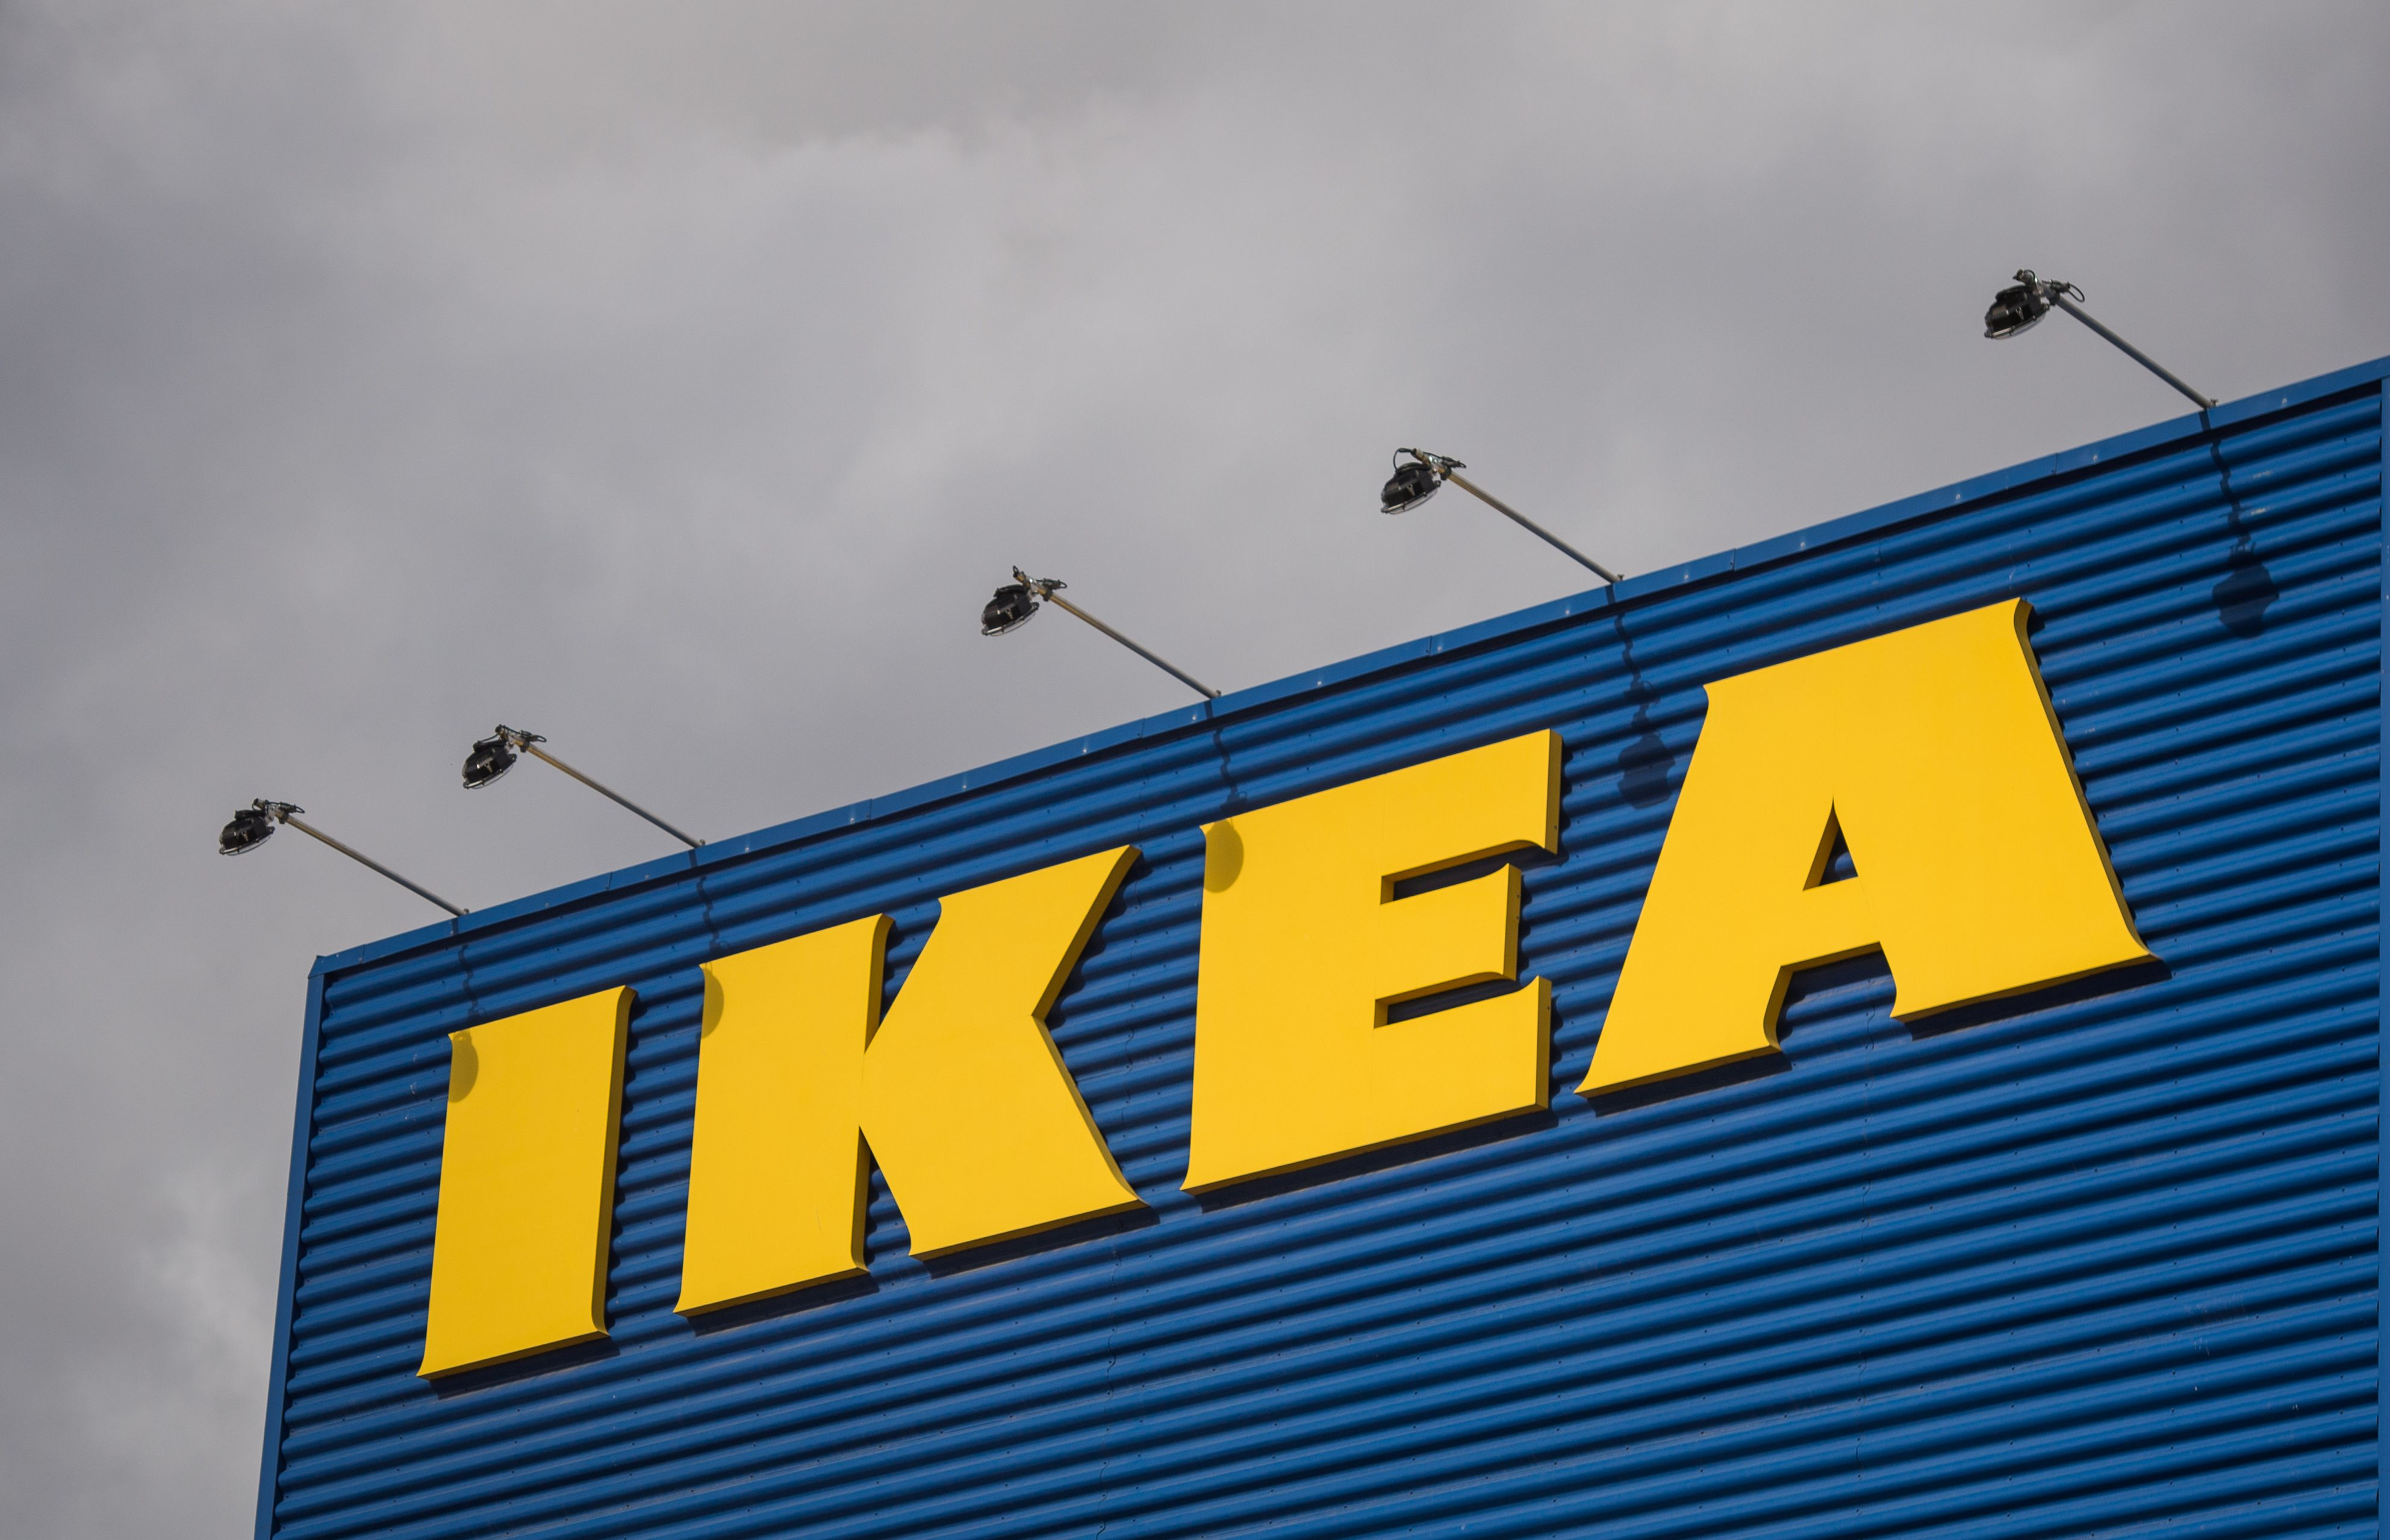 Europe's biggest IKEA store in Kungens Kurva, south-west of Stockholm.